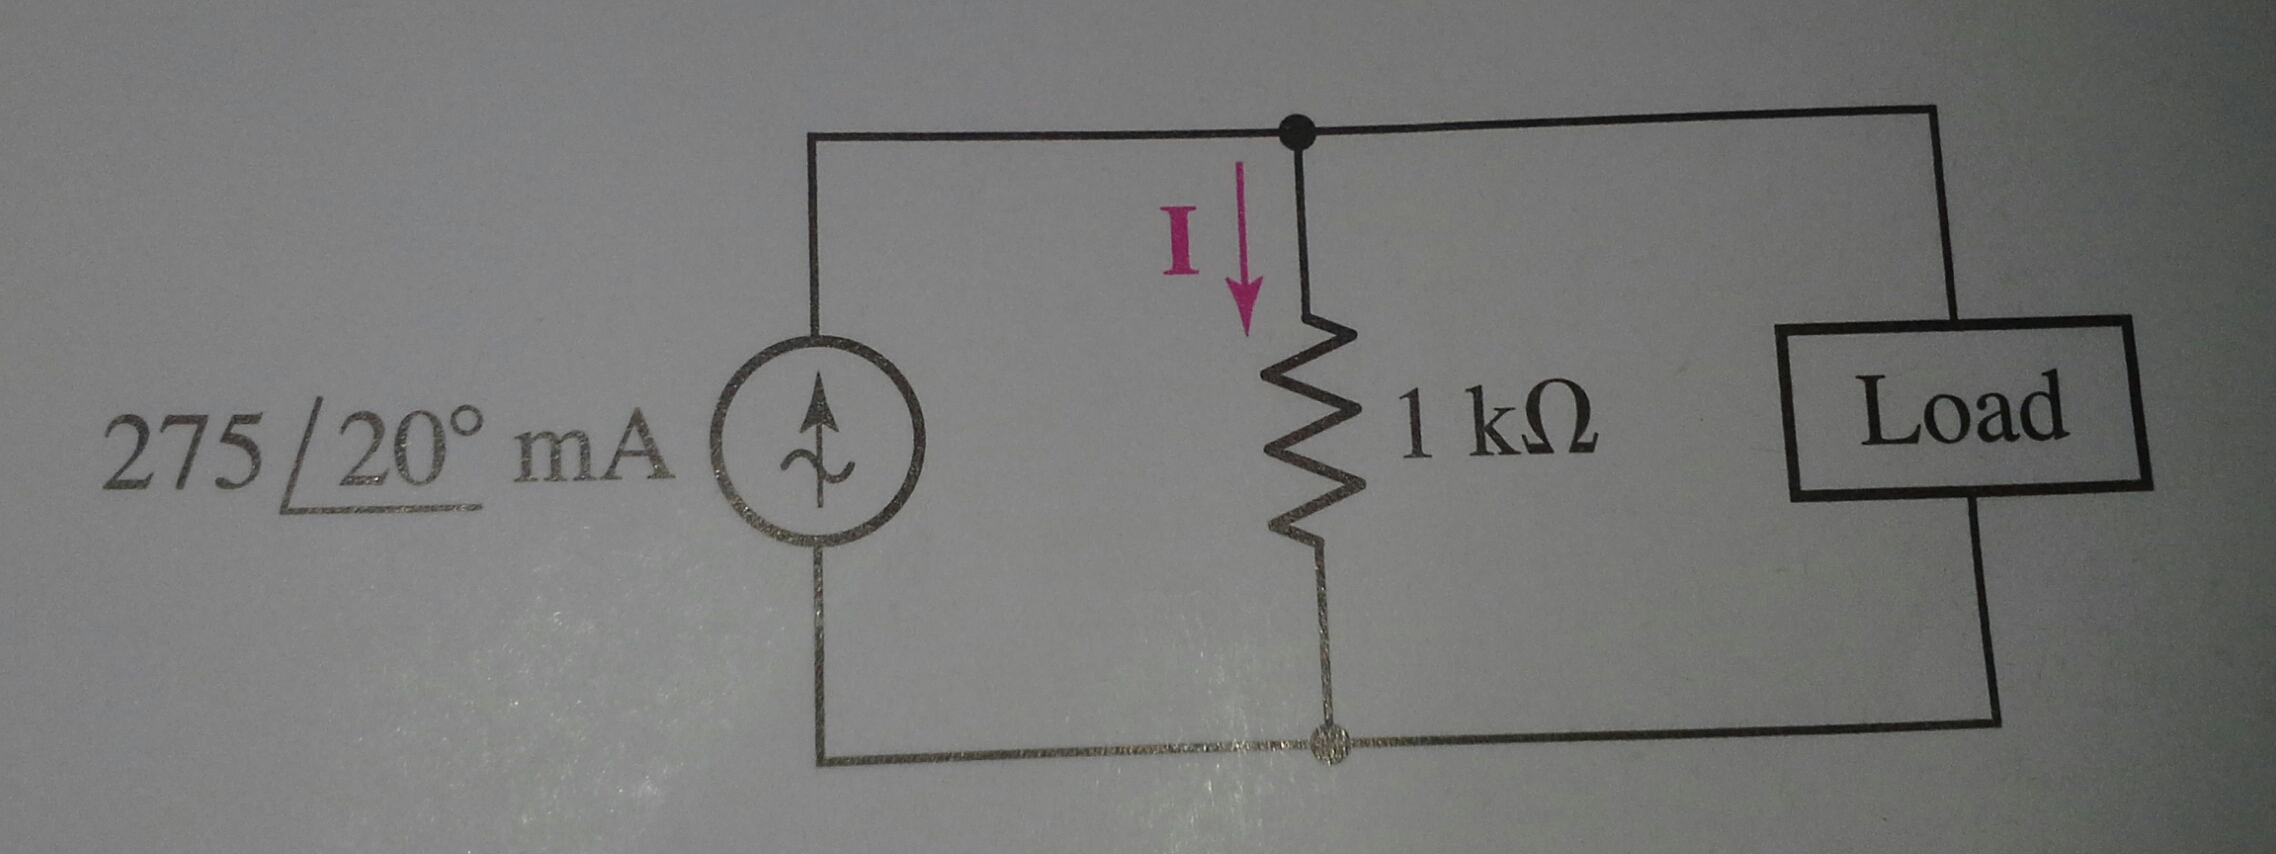 Determine the load impedance for the circuit depic